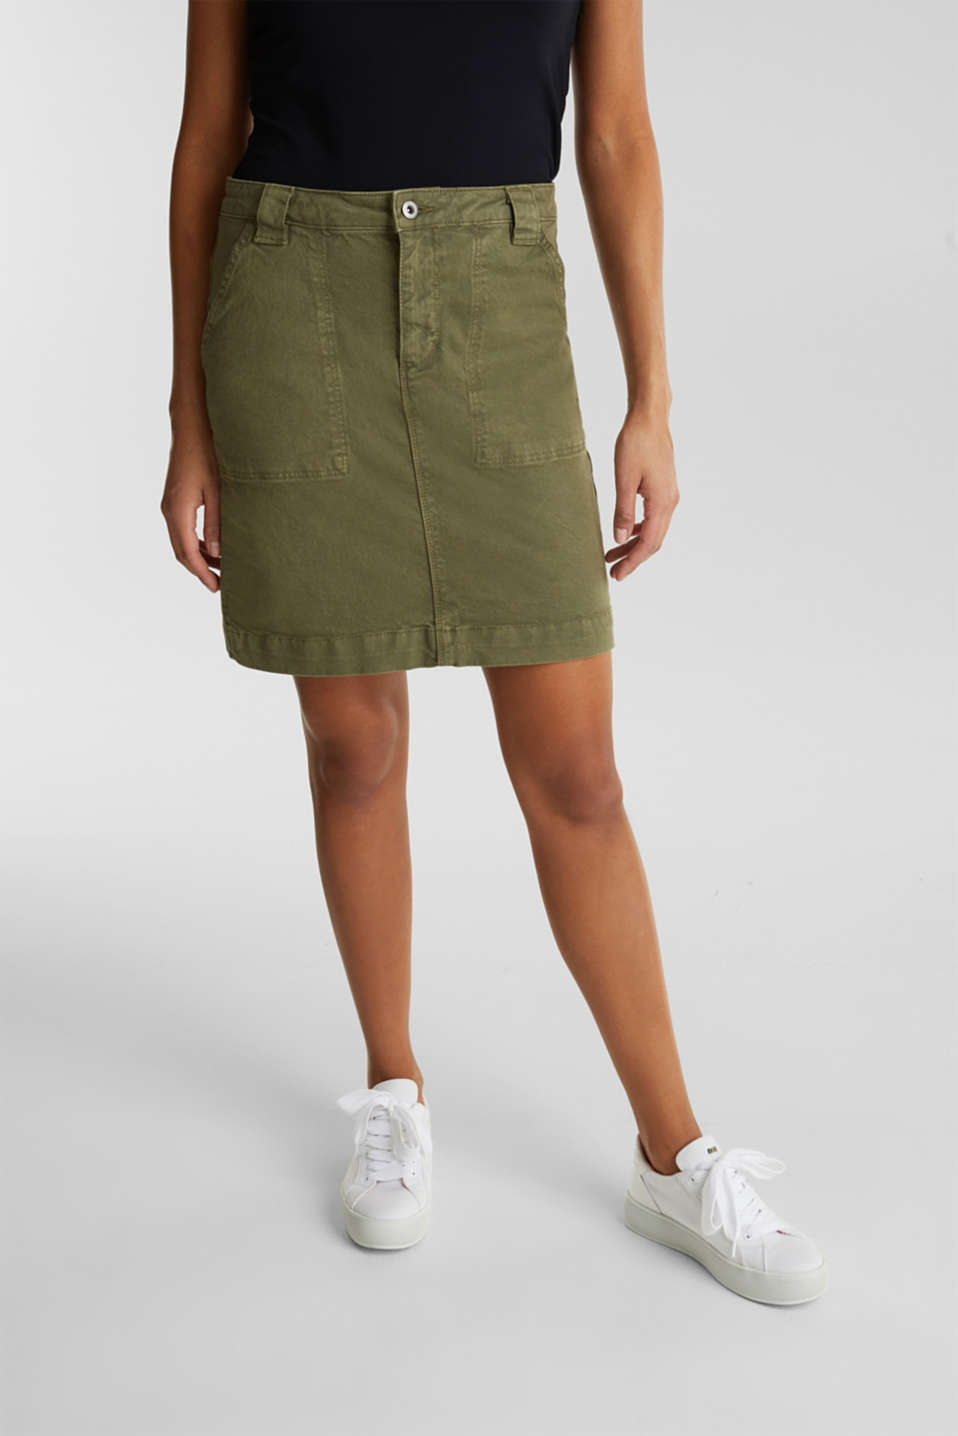 Denim skirt with pockets, KHAKI GREEN, detail image number 0